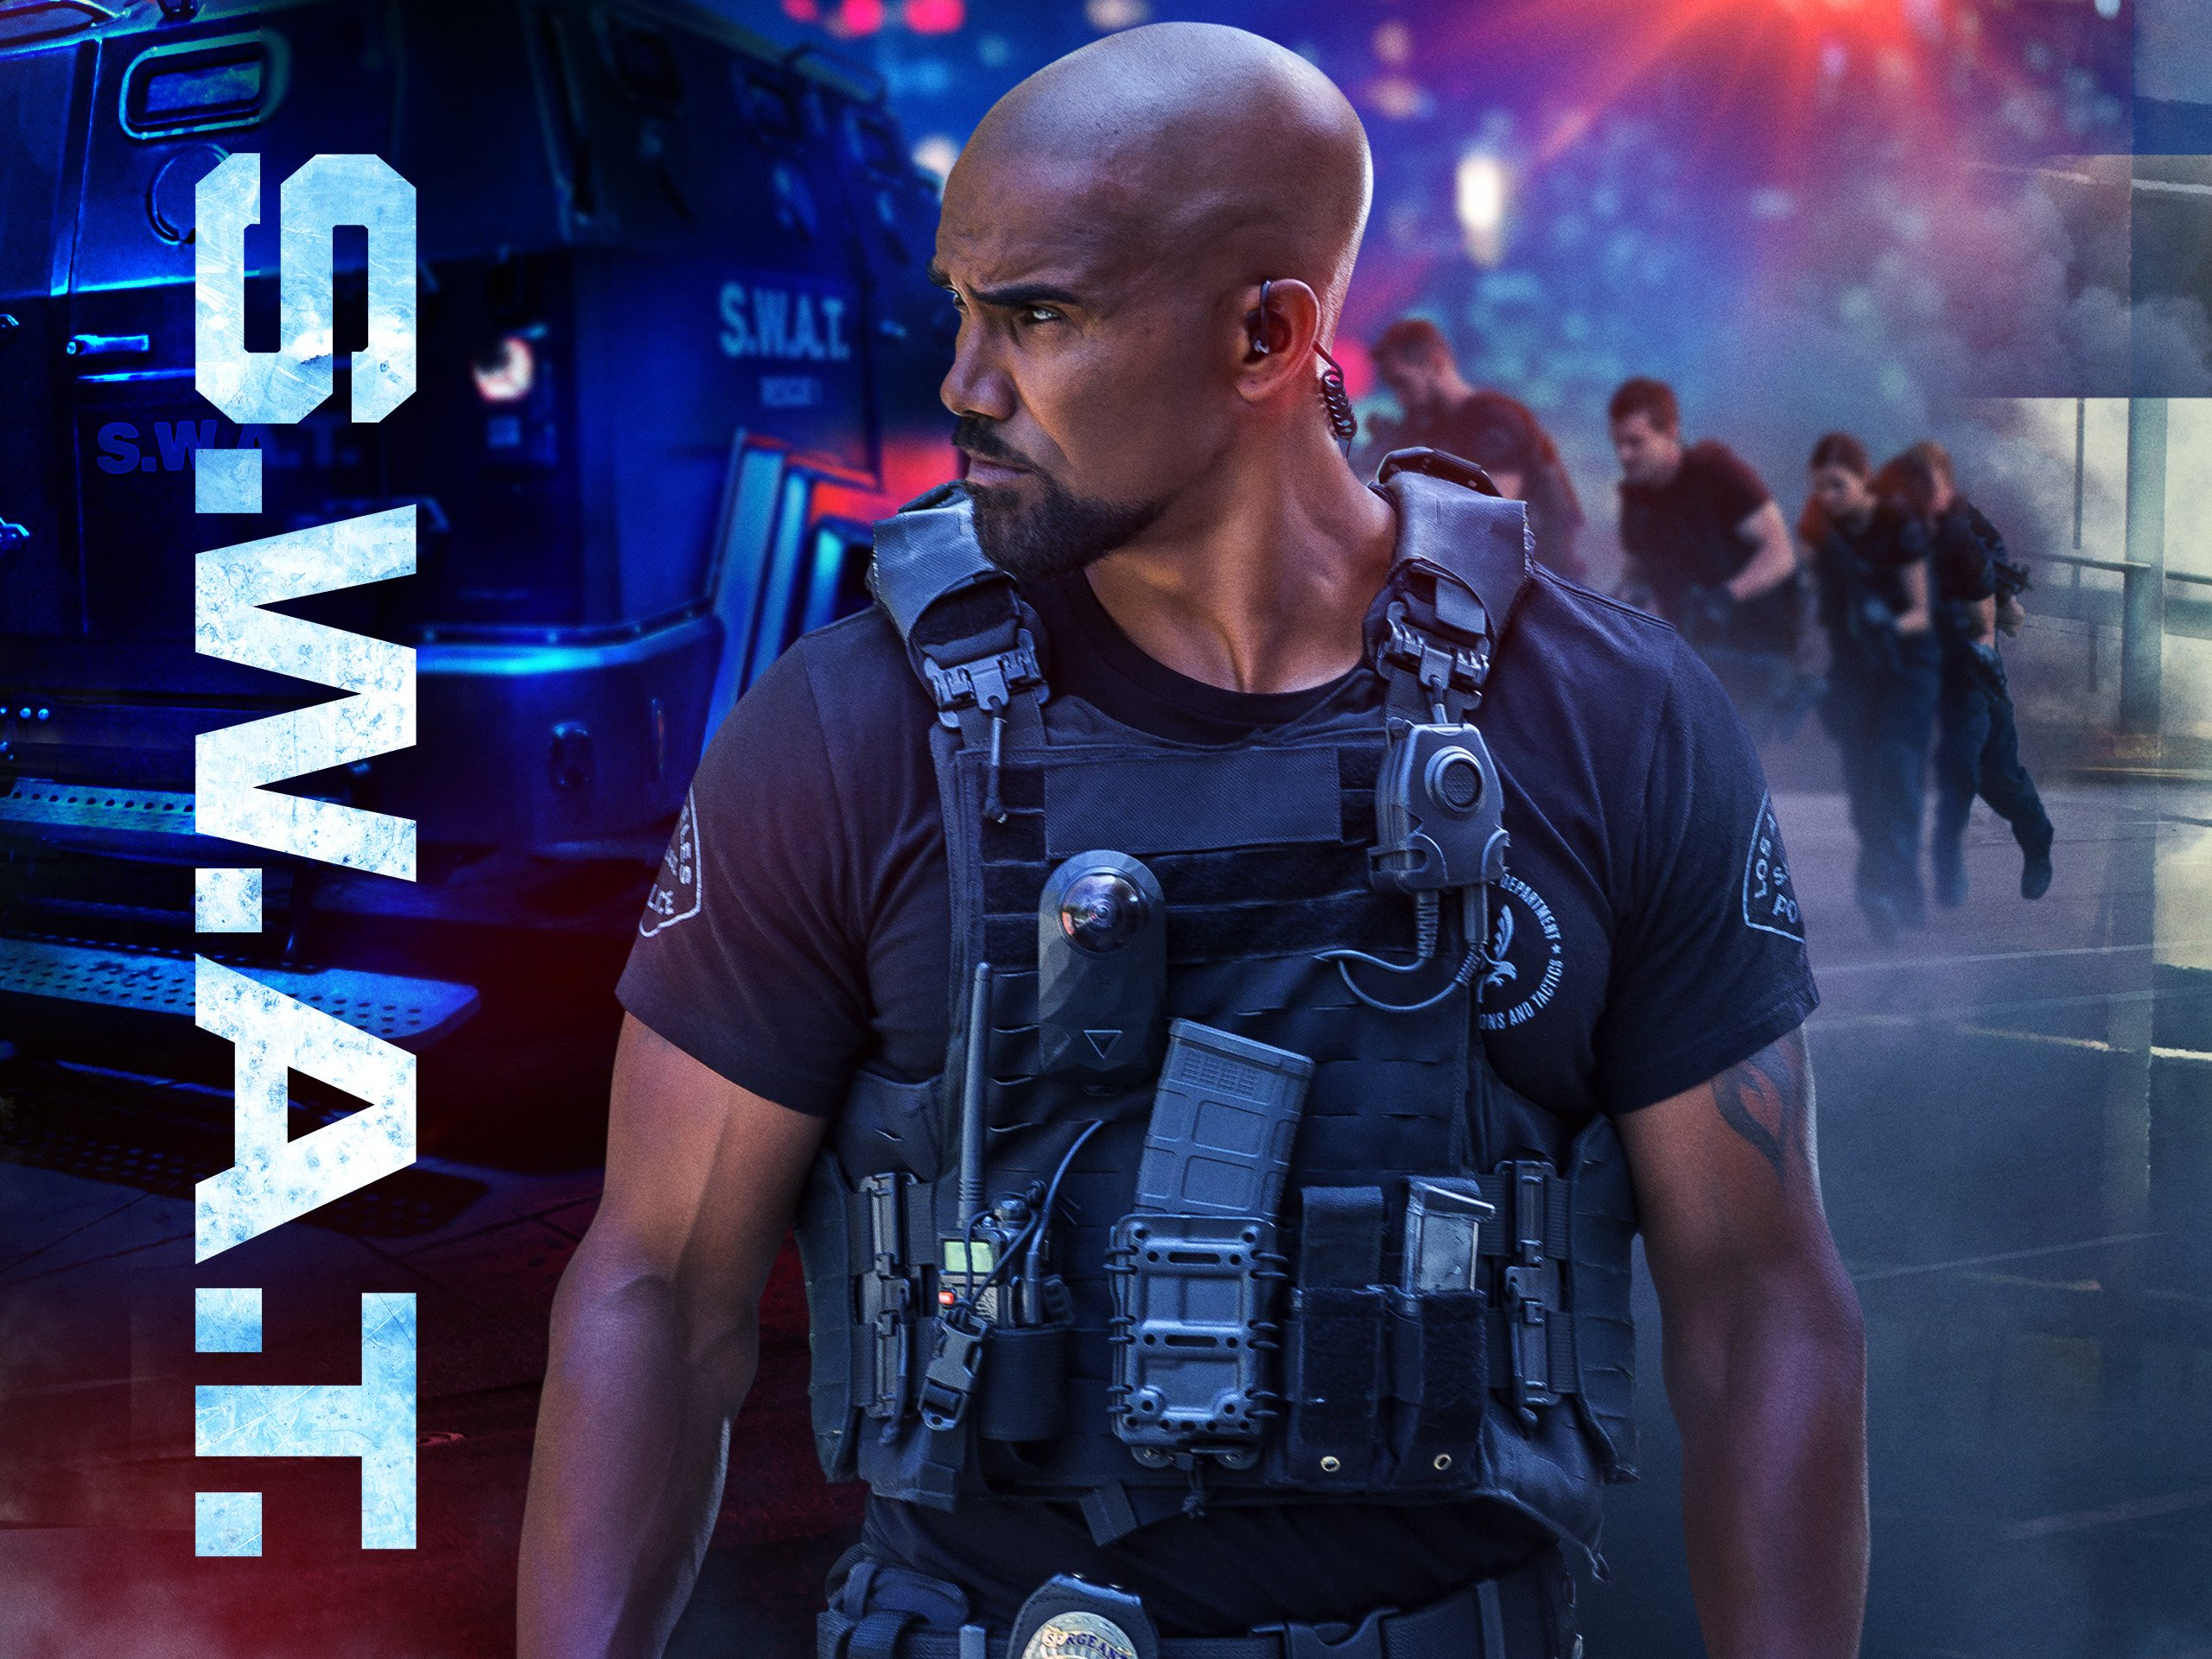 S.W.A.T. on Amazon Prime Video UK